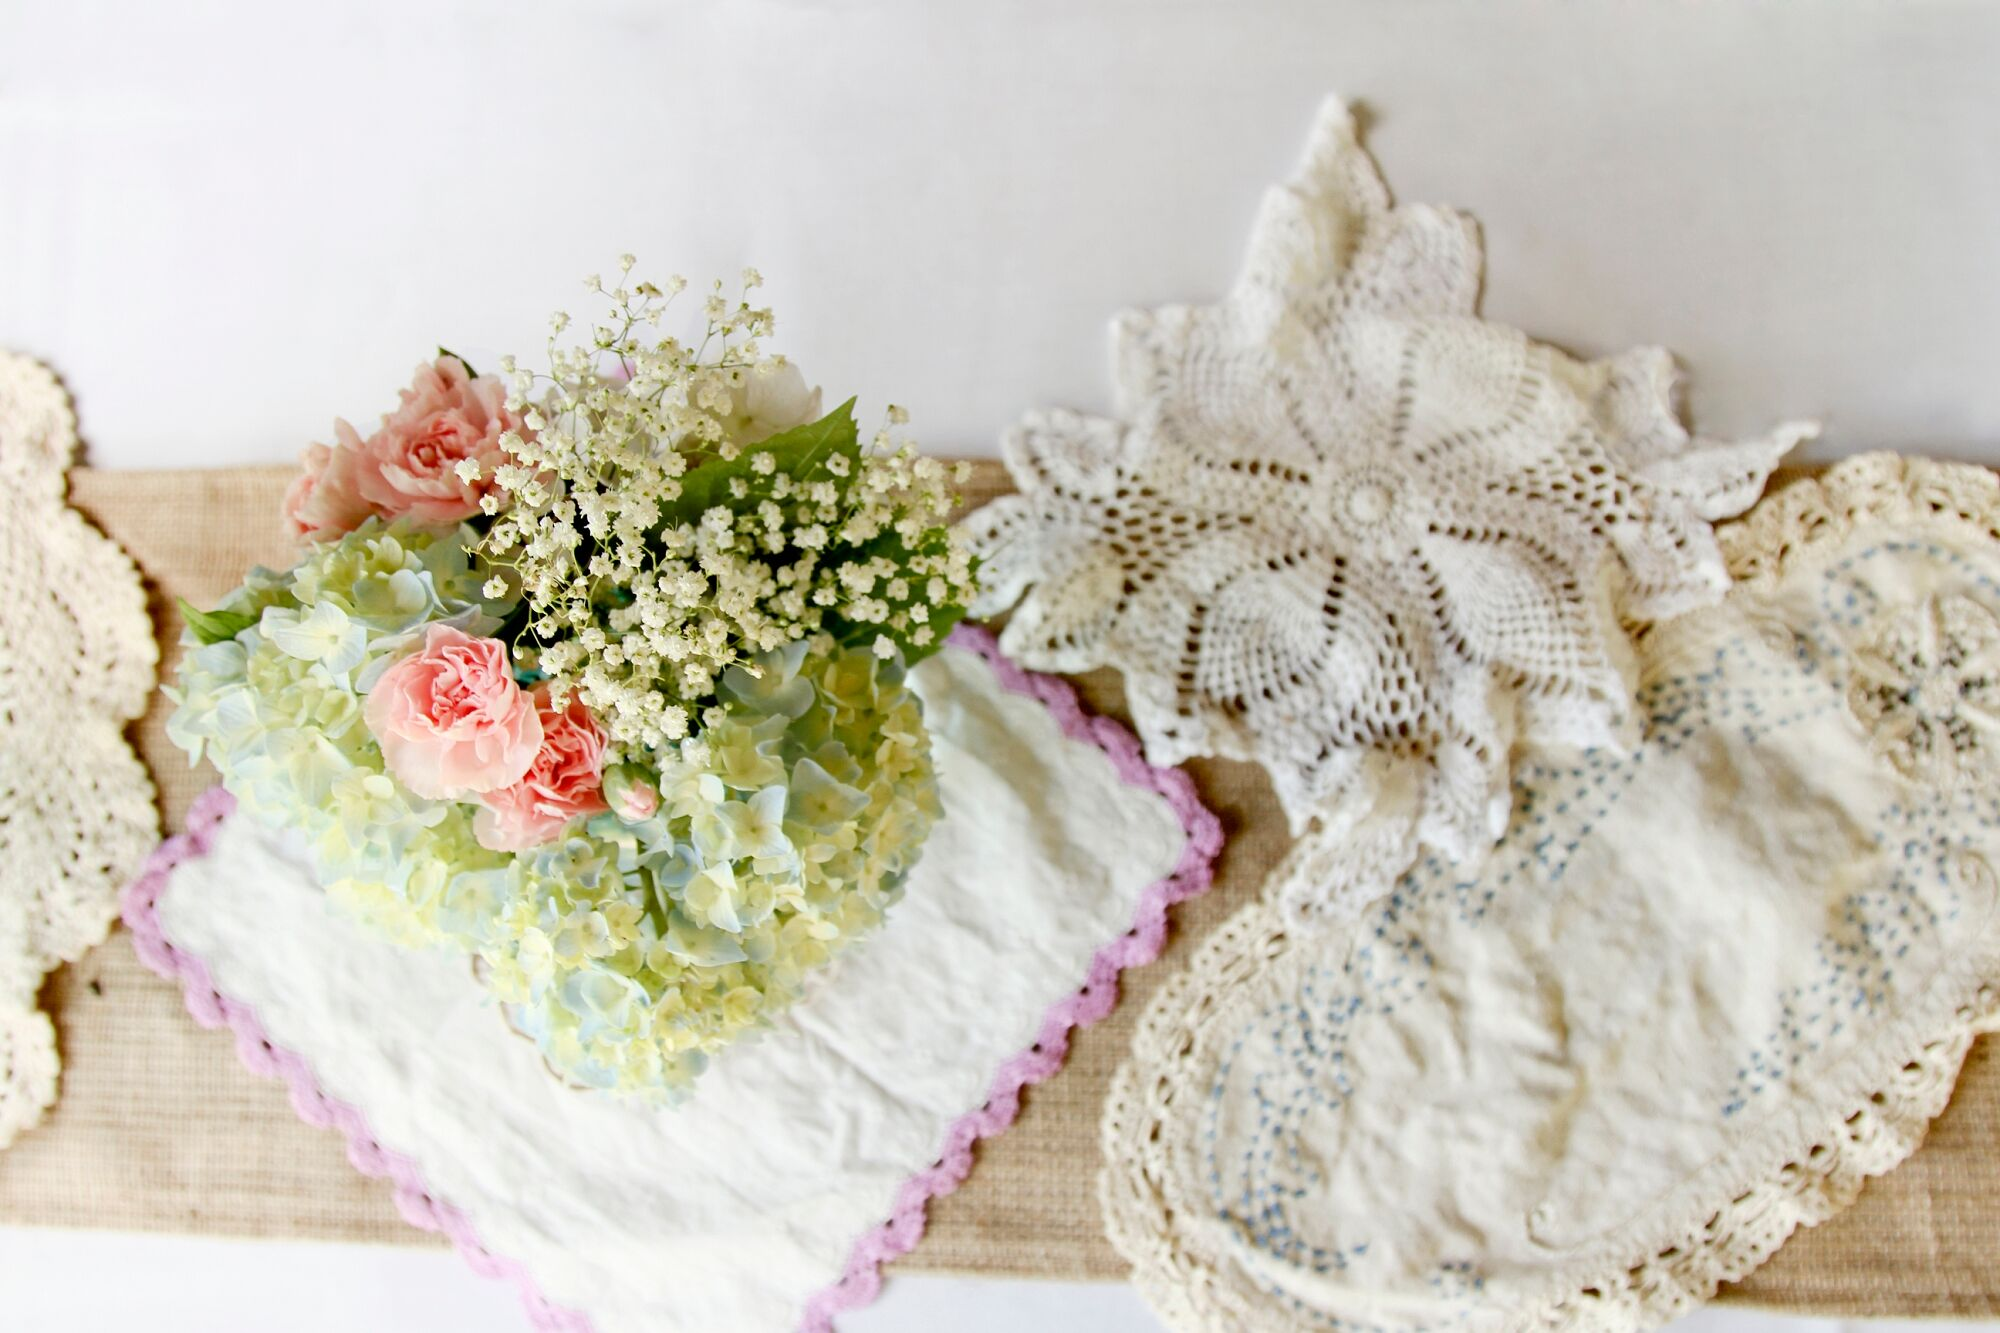 Centerpieces On Burlap Table Runner And Lace Doilies